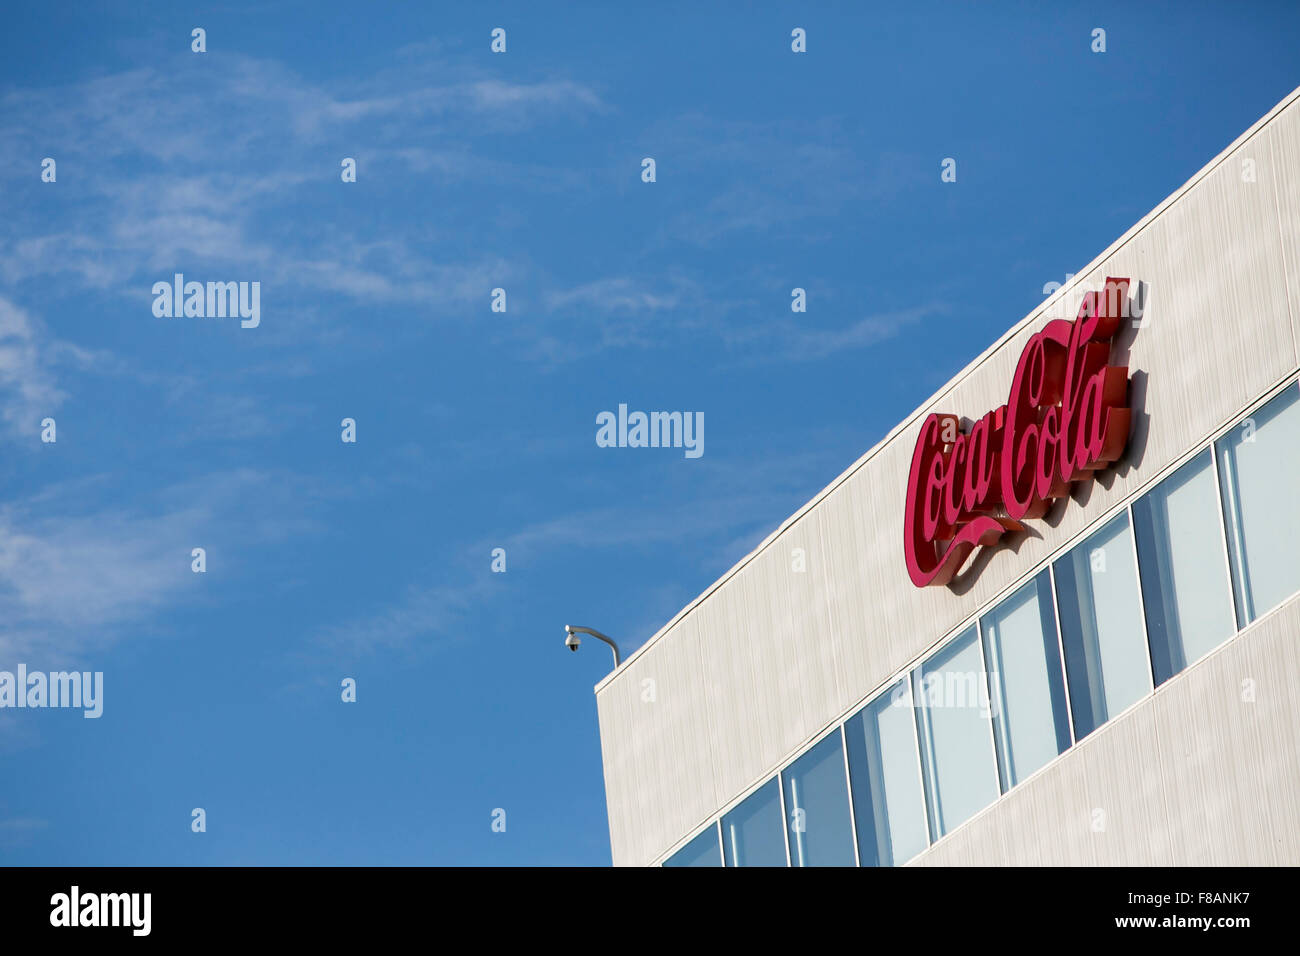 A logo sign outside of a facility occupied by Coca-Cola in Charlotte, North Carolina on November 28, 2015. - Stock Image